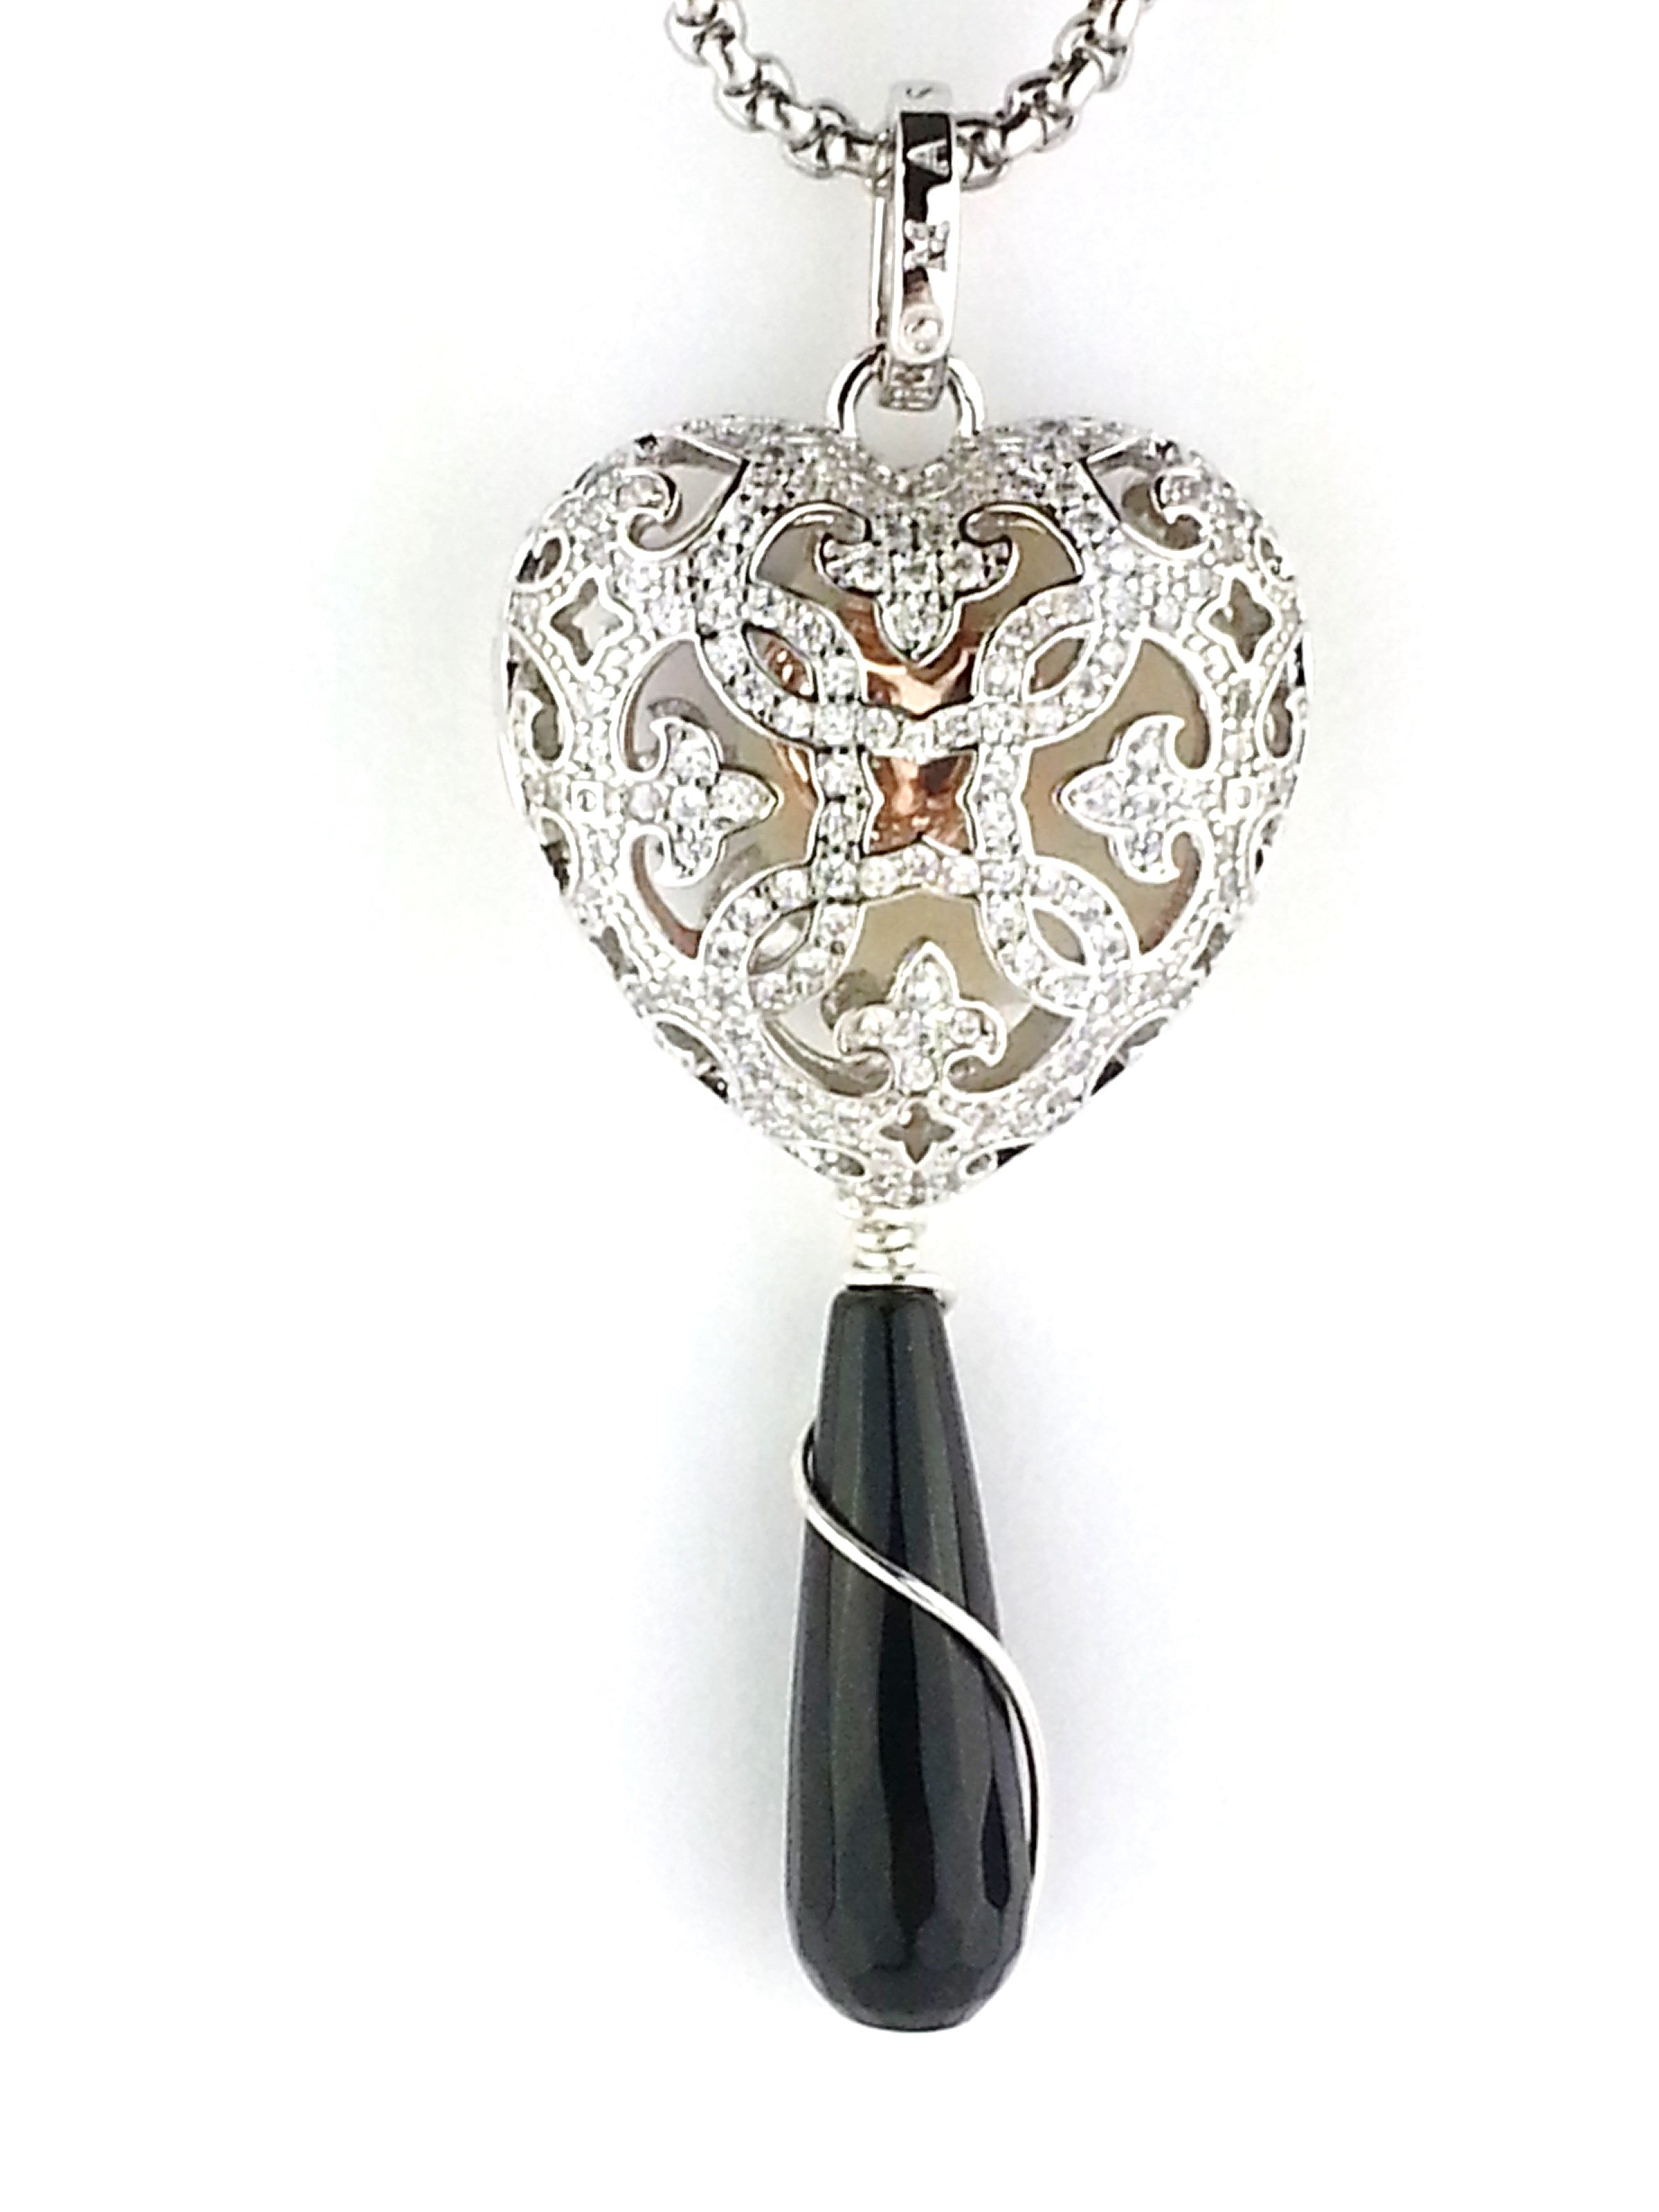 Essential oil heart shaped diffuser necklace with wire wrapped black onyx from Earth in Wire